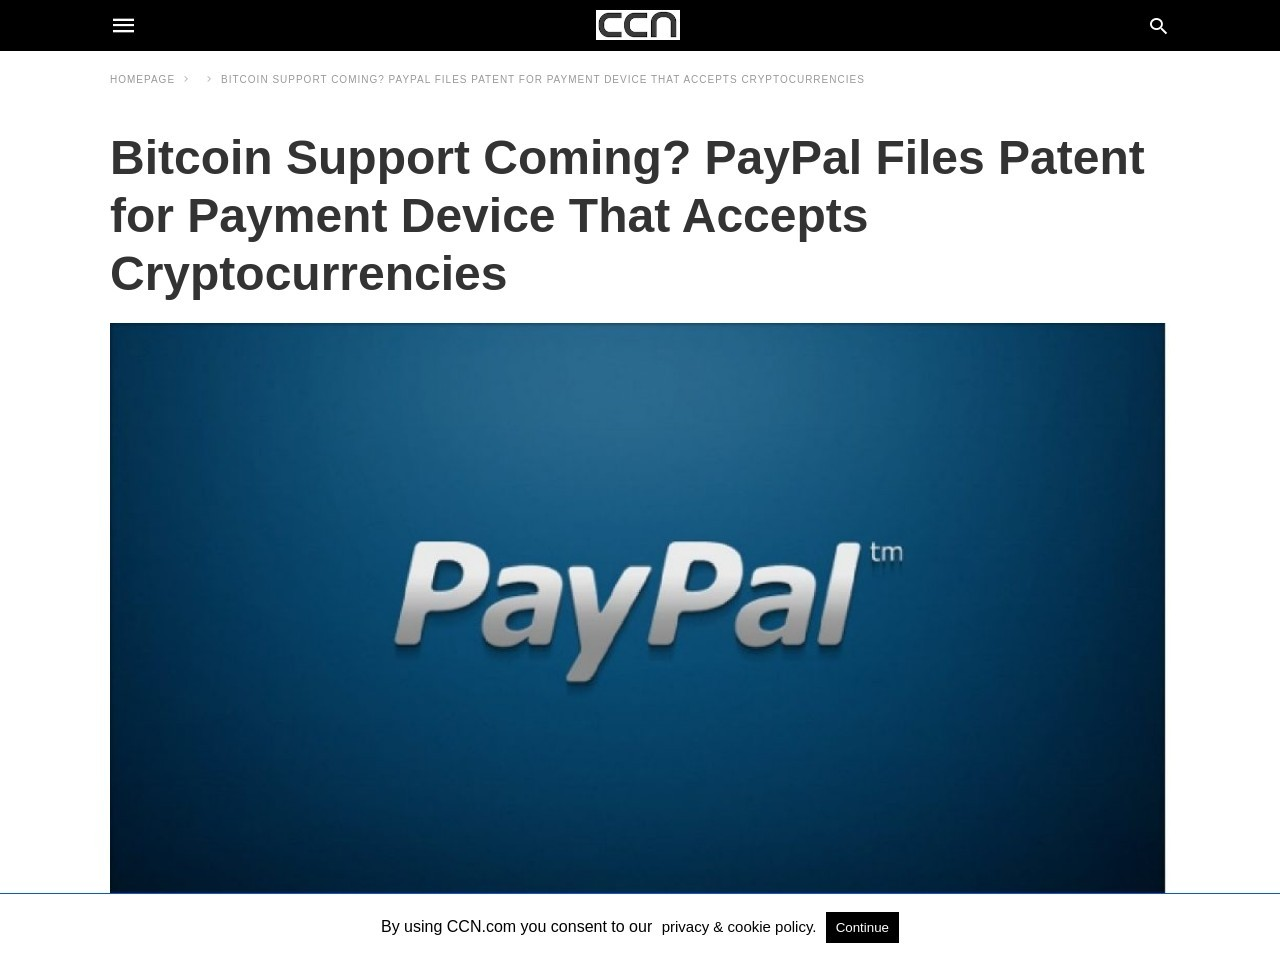 Bitcoin Support Coming? PayPal Files Patent for Payment Device That Accepts Cryptocurrencies